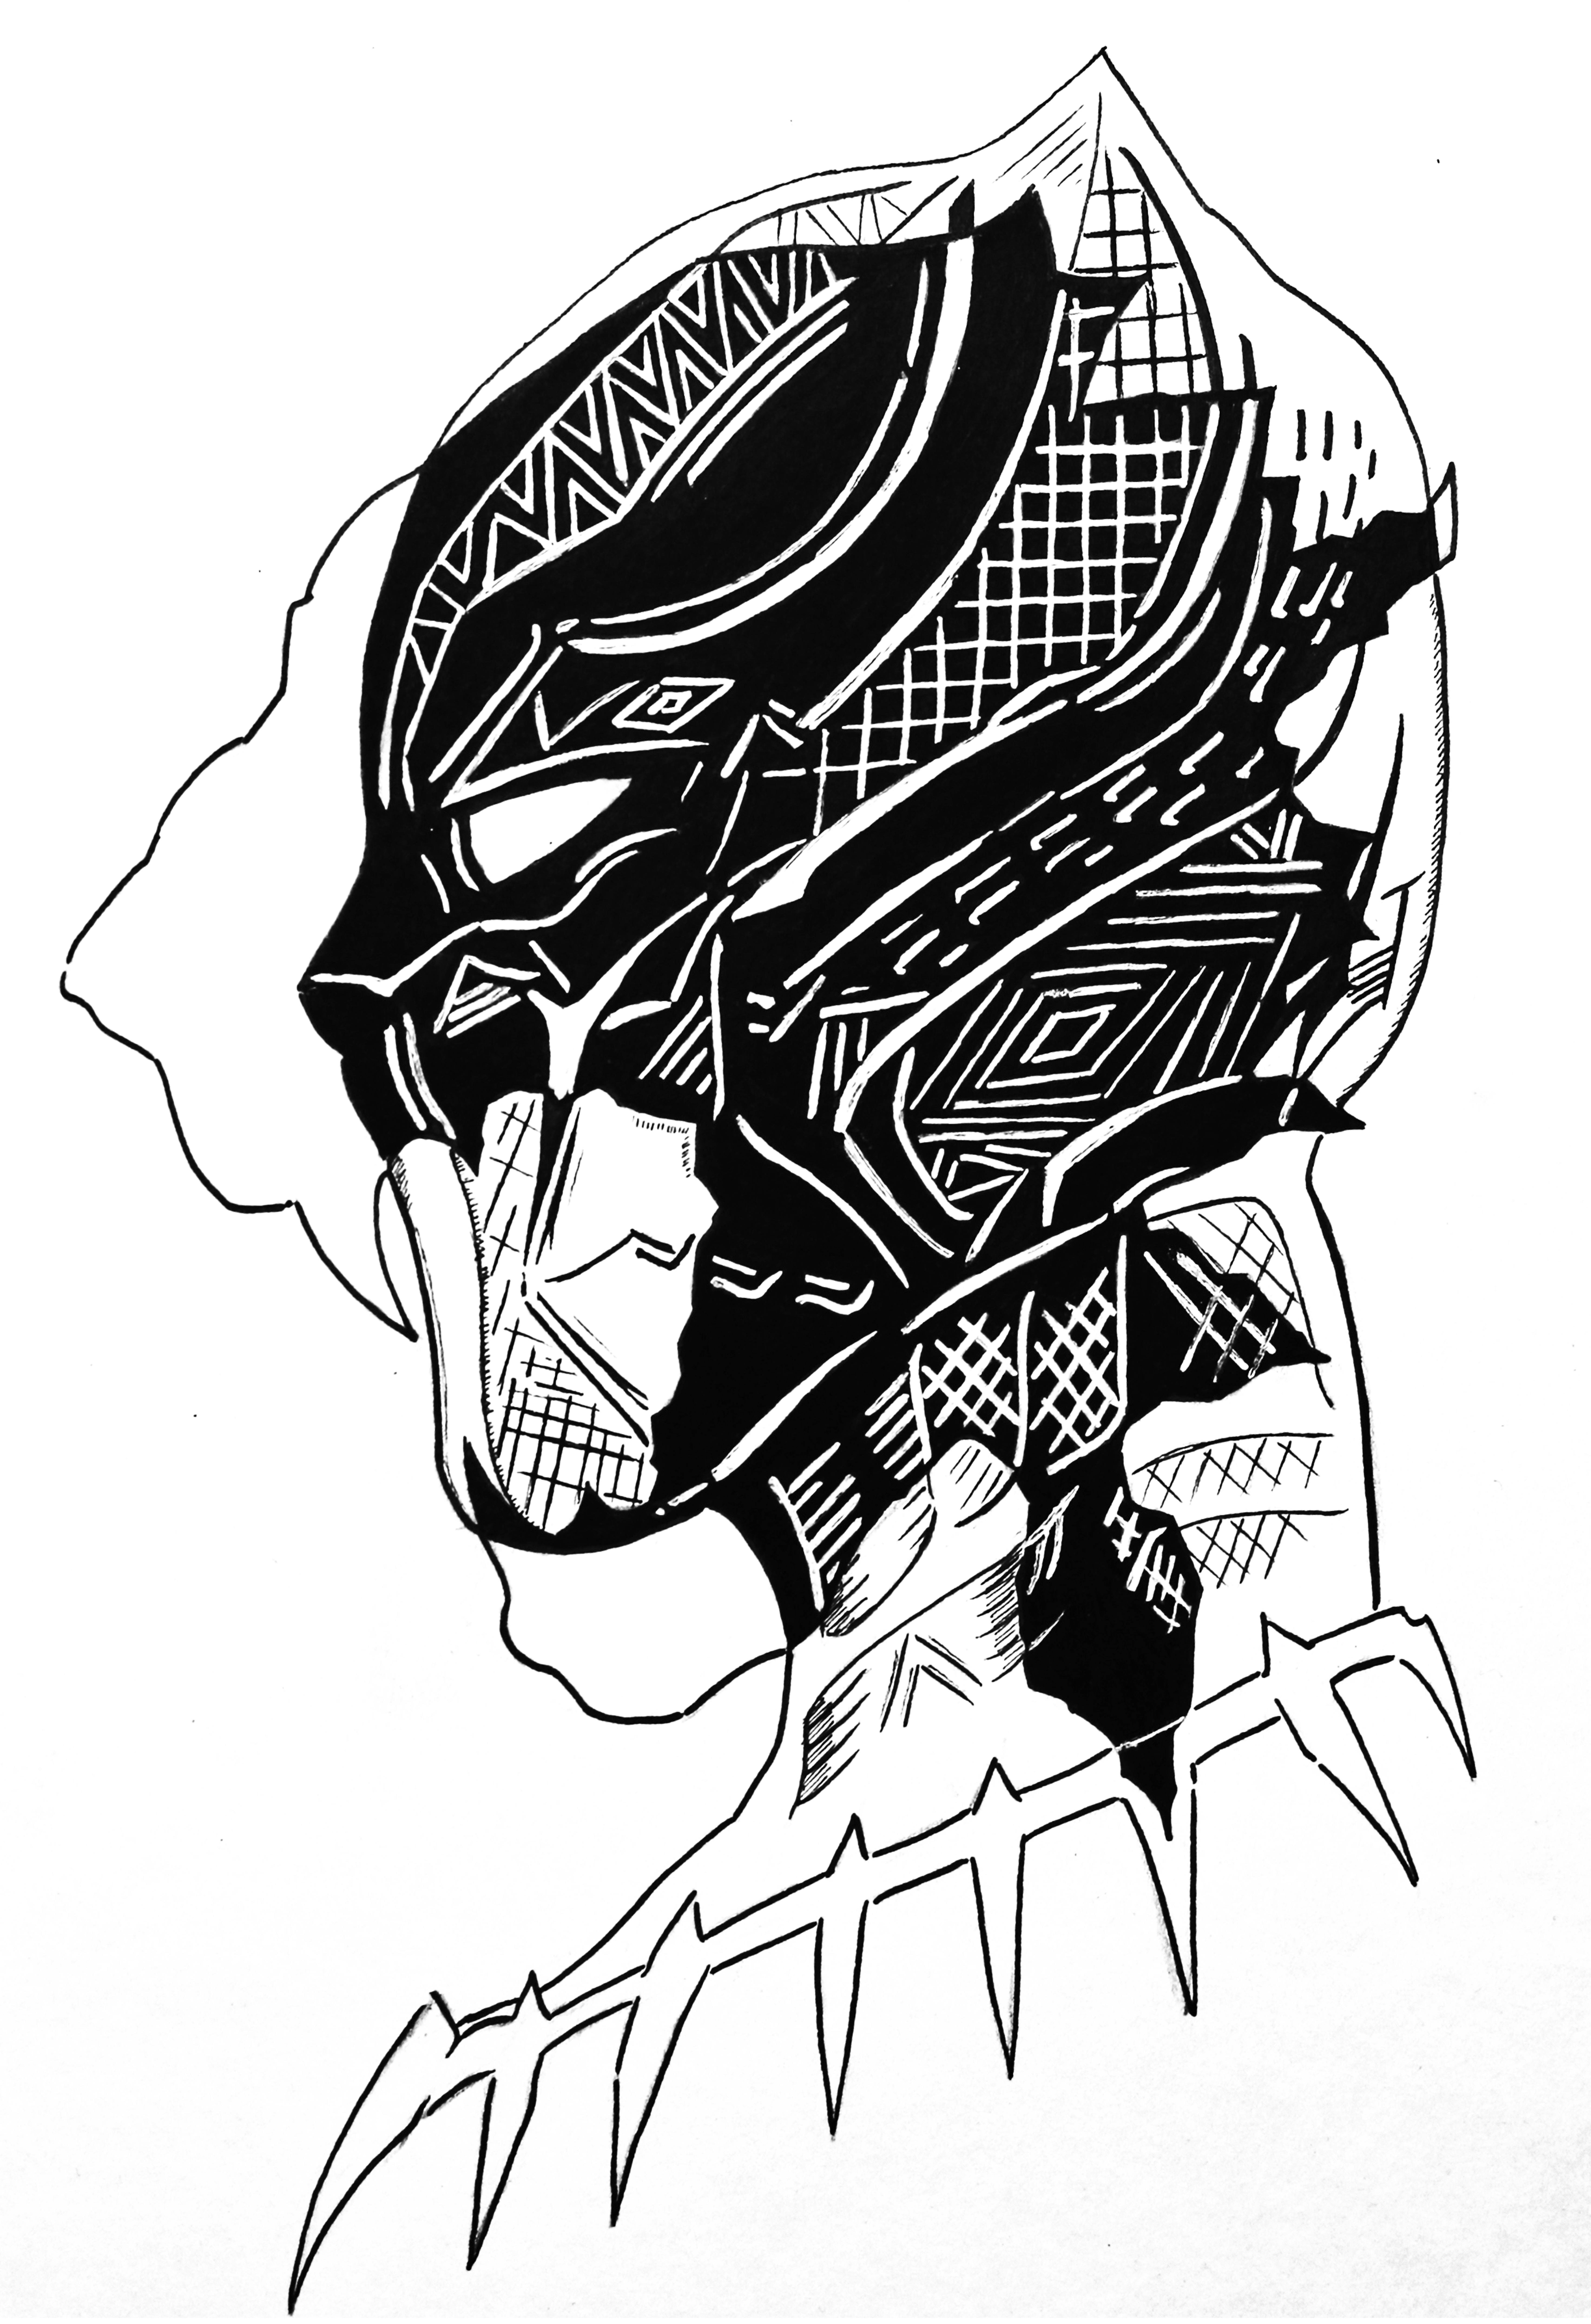 Black Panther Black And White Ink Design By Sour Cloud White Ink